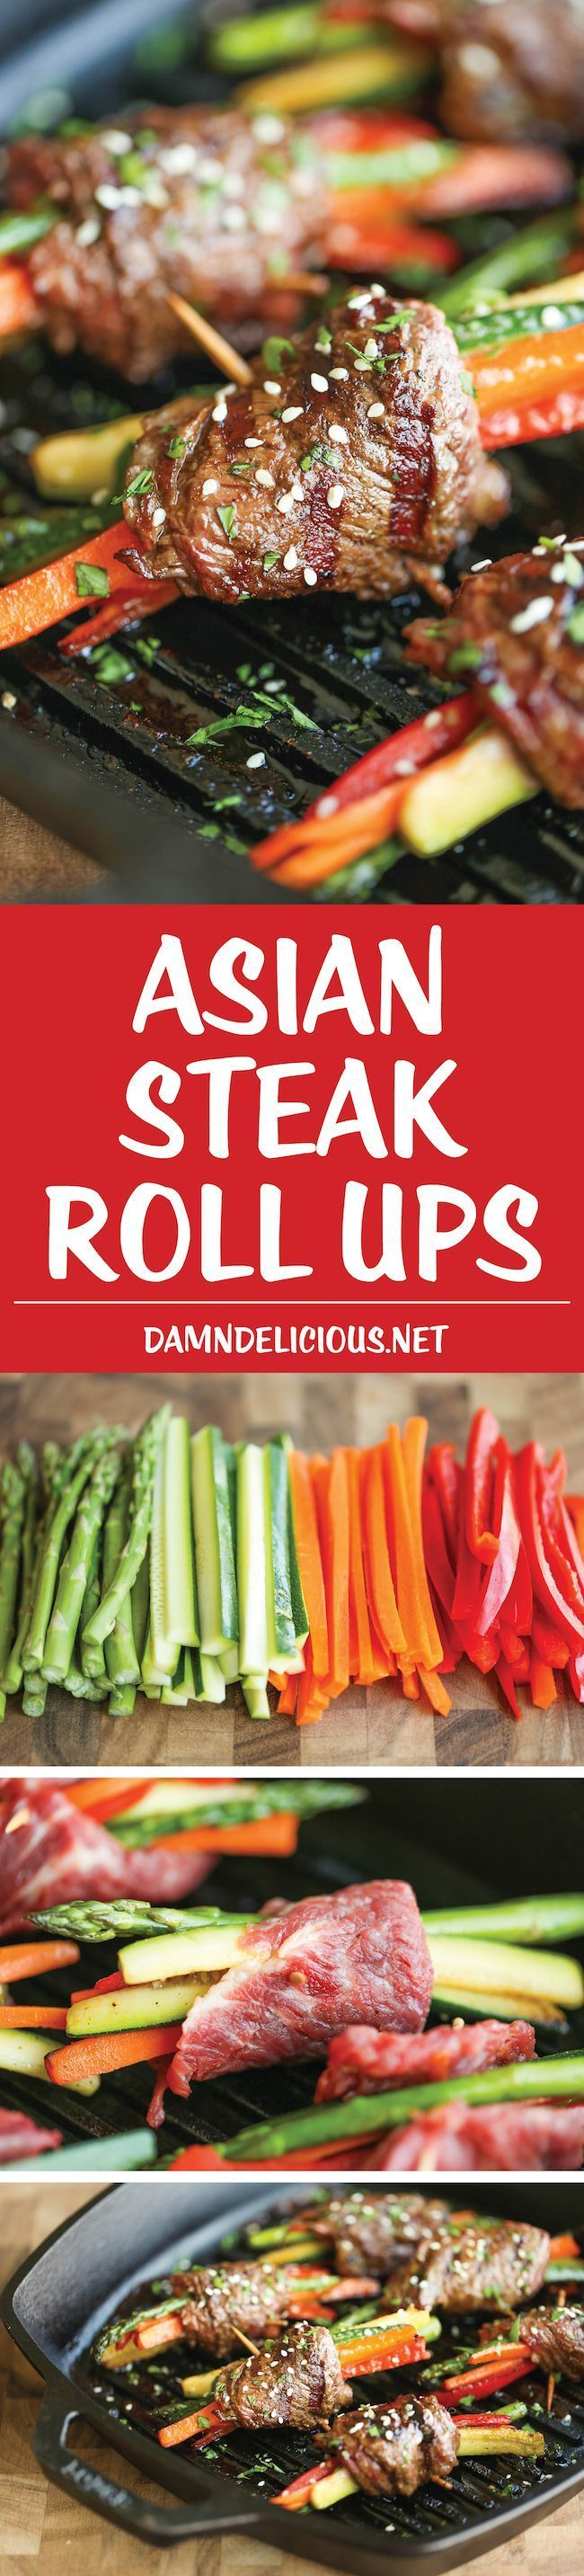 Asian Steak Roll Ups - Easy make-ahead roll ups with tons of veggies and the best Asian marinade loaded with so much flavor. Can be grilled or pan seared! @damndelicious